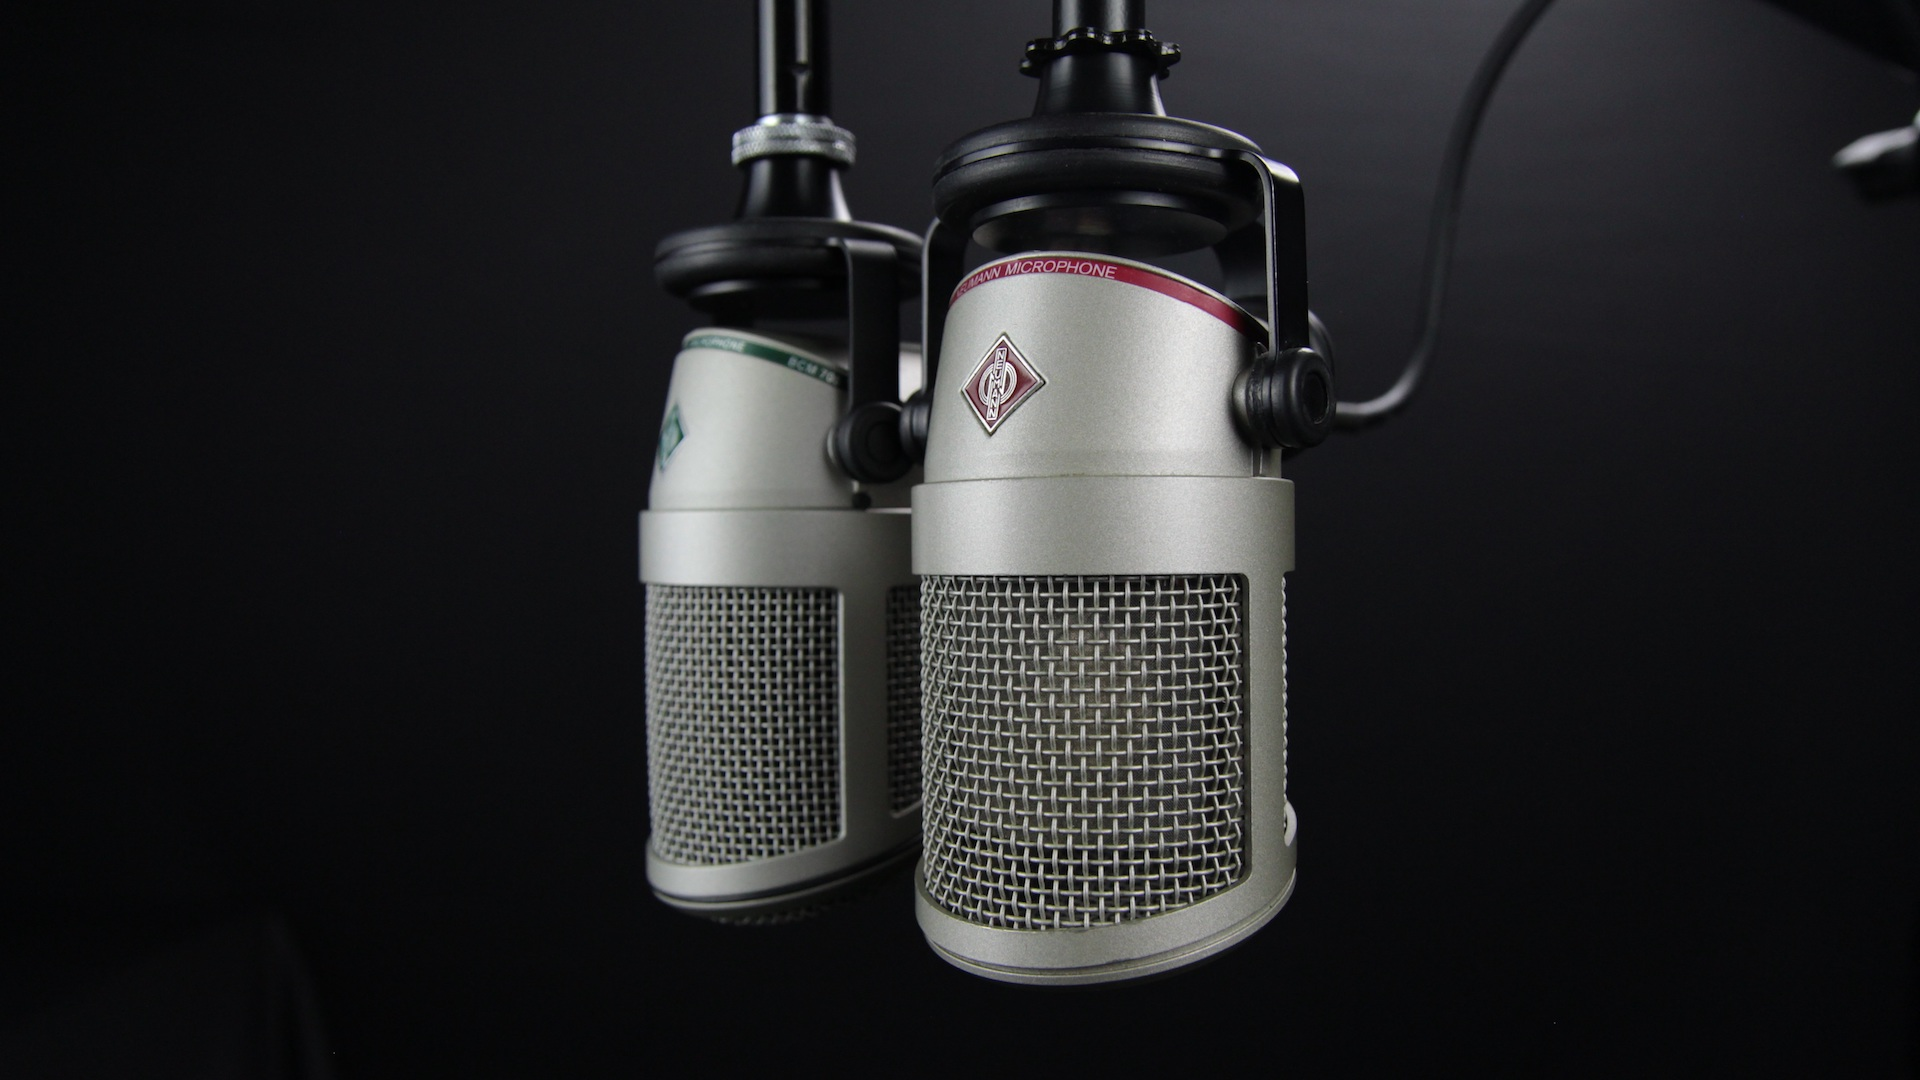 CONNECT17 Radio Awards: Most Engaging Radio Prize